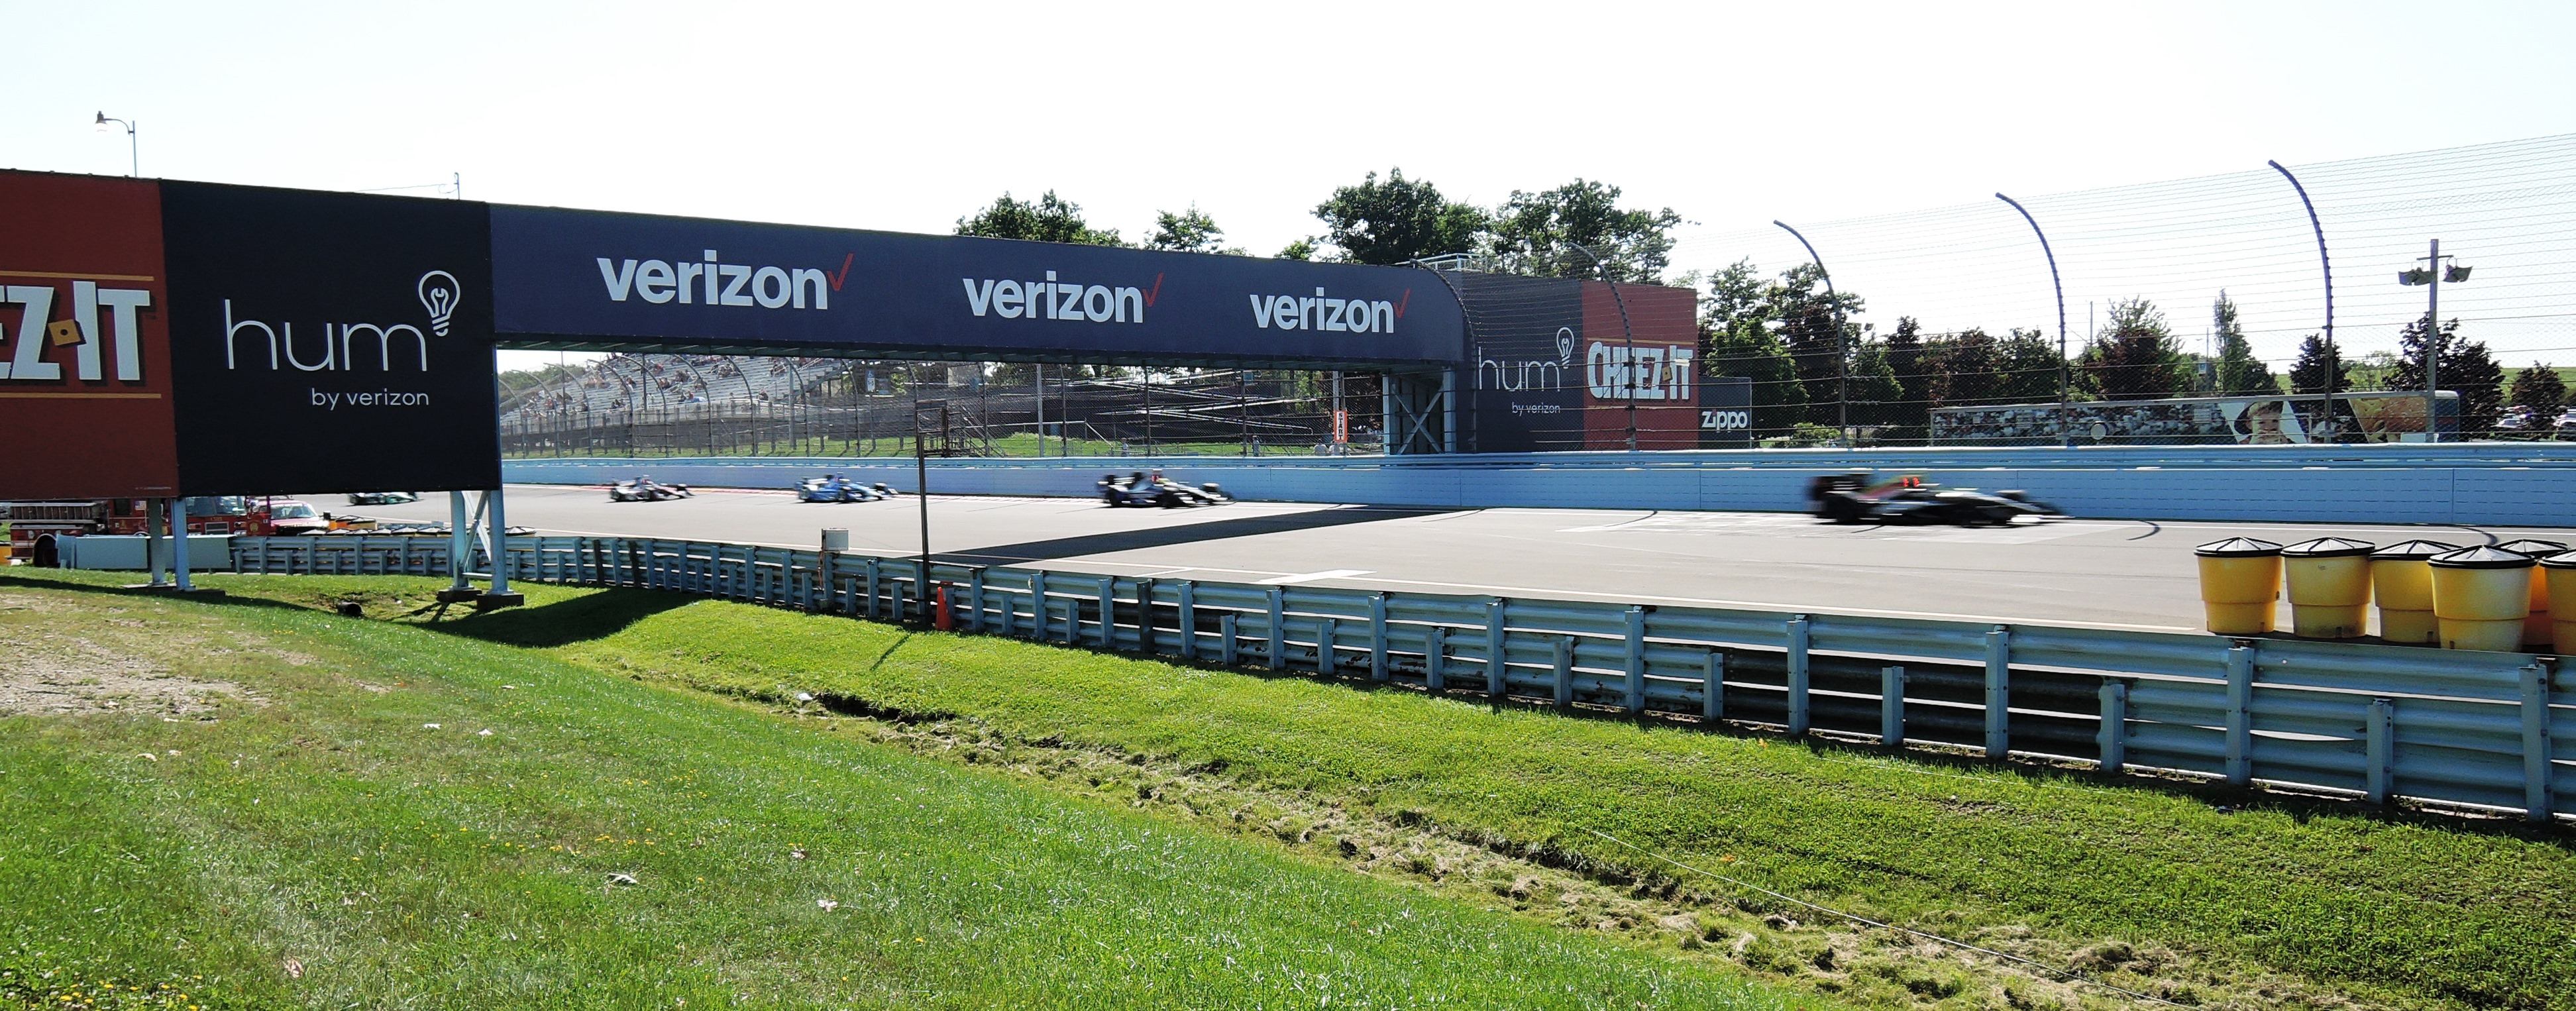 Turn 1 WGI Indy Car Race - watkins glen ferrari club